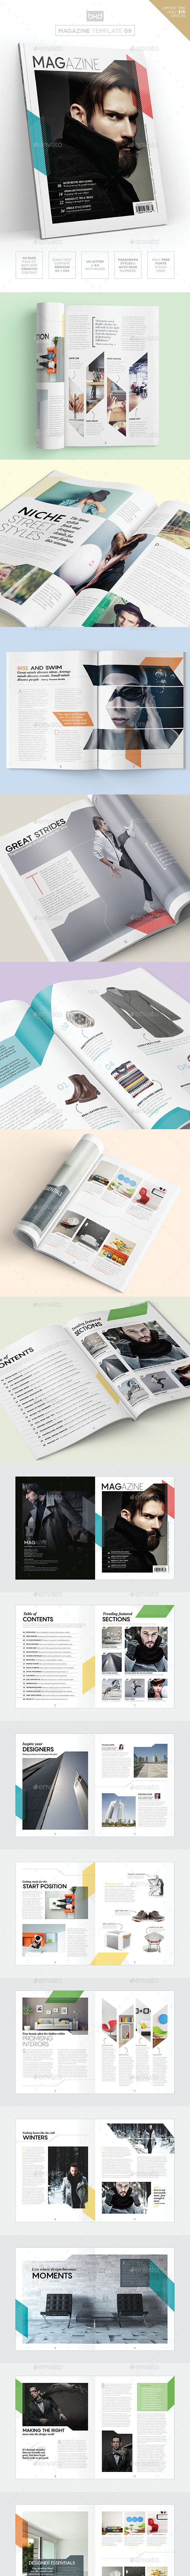 Magazine Template - InDesign 40 Page Layout V9 - Magazines Print Templates